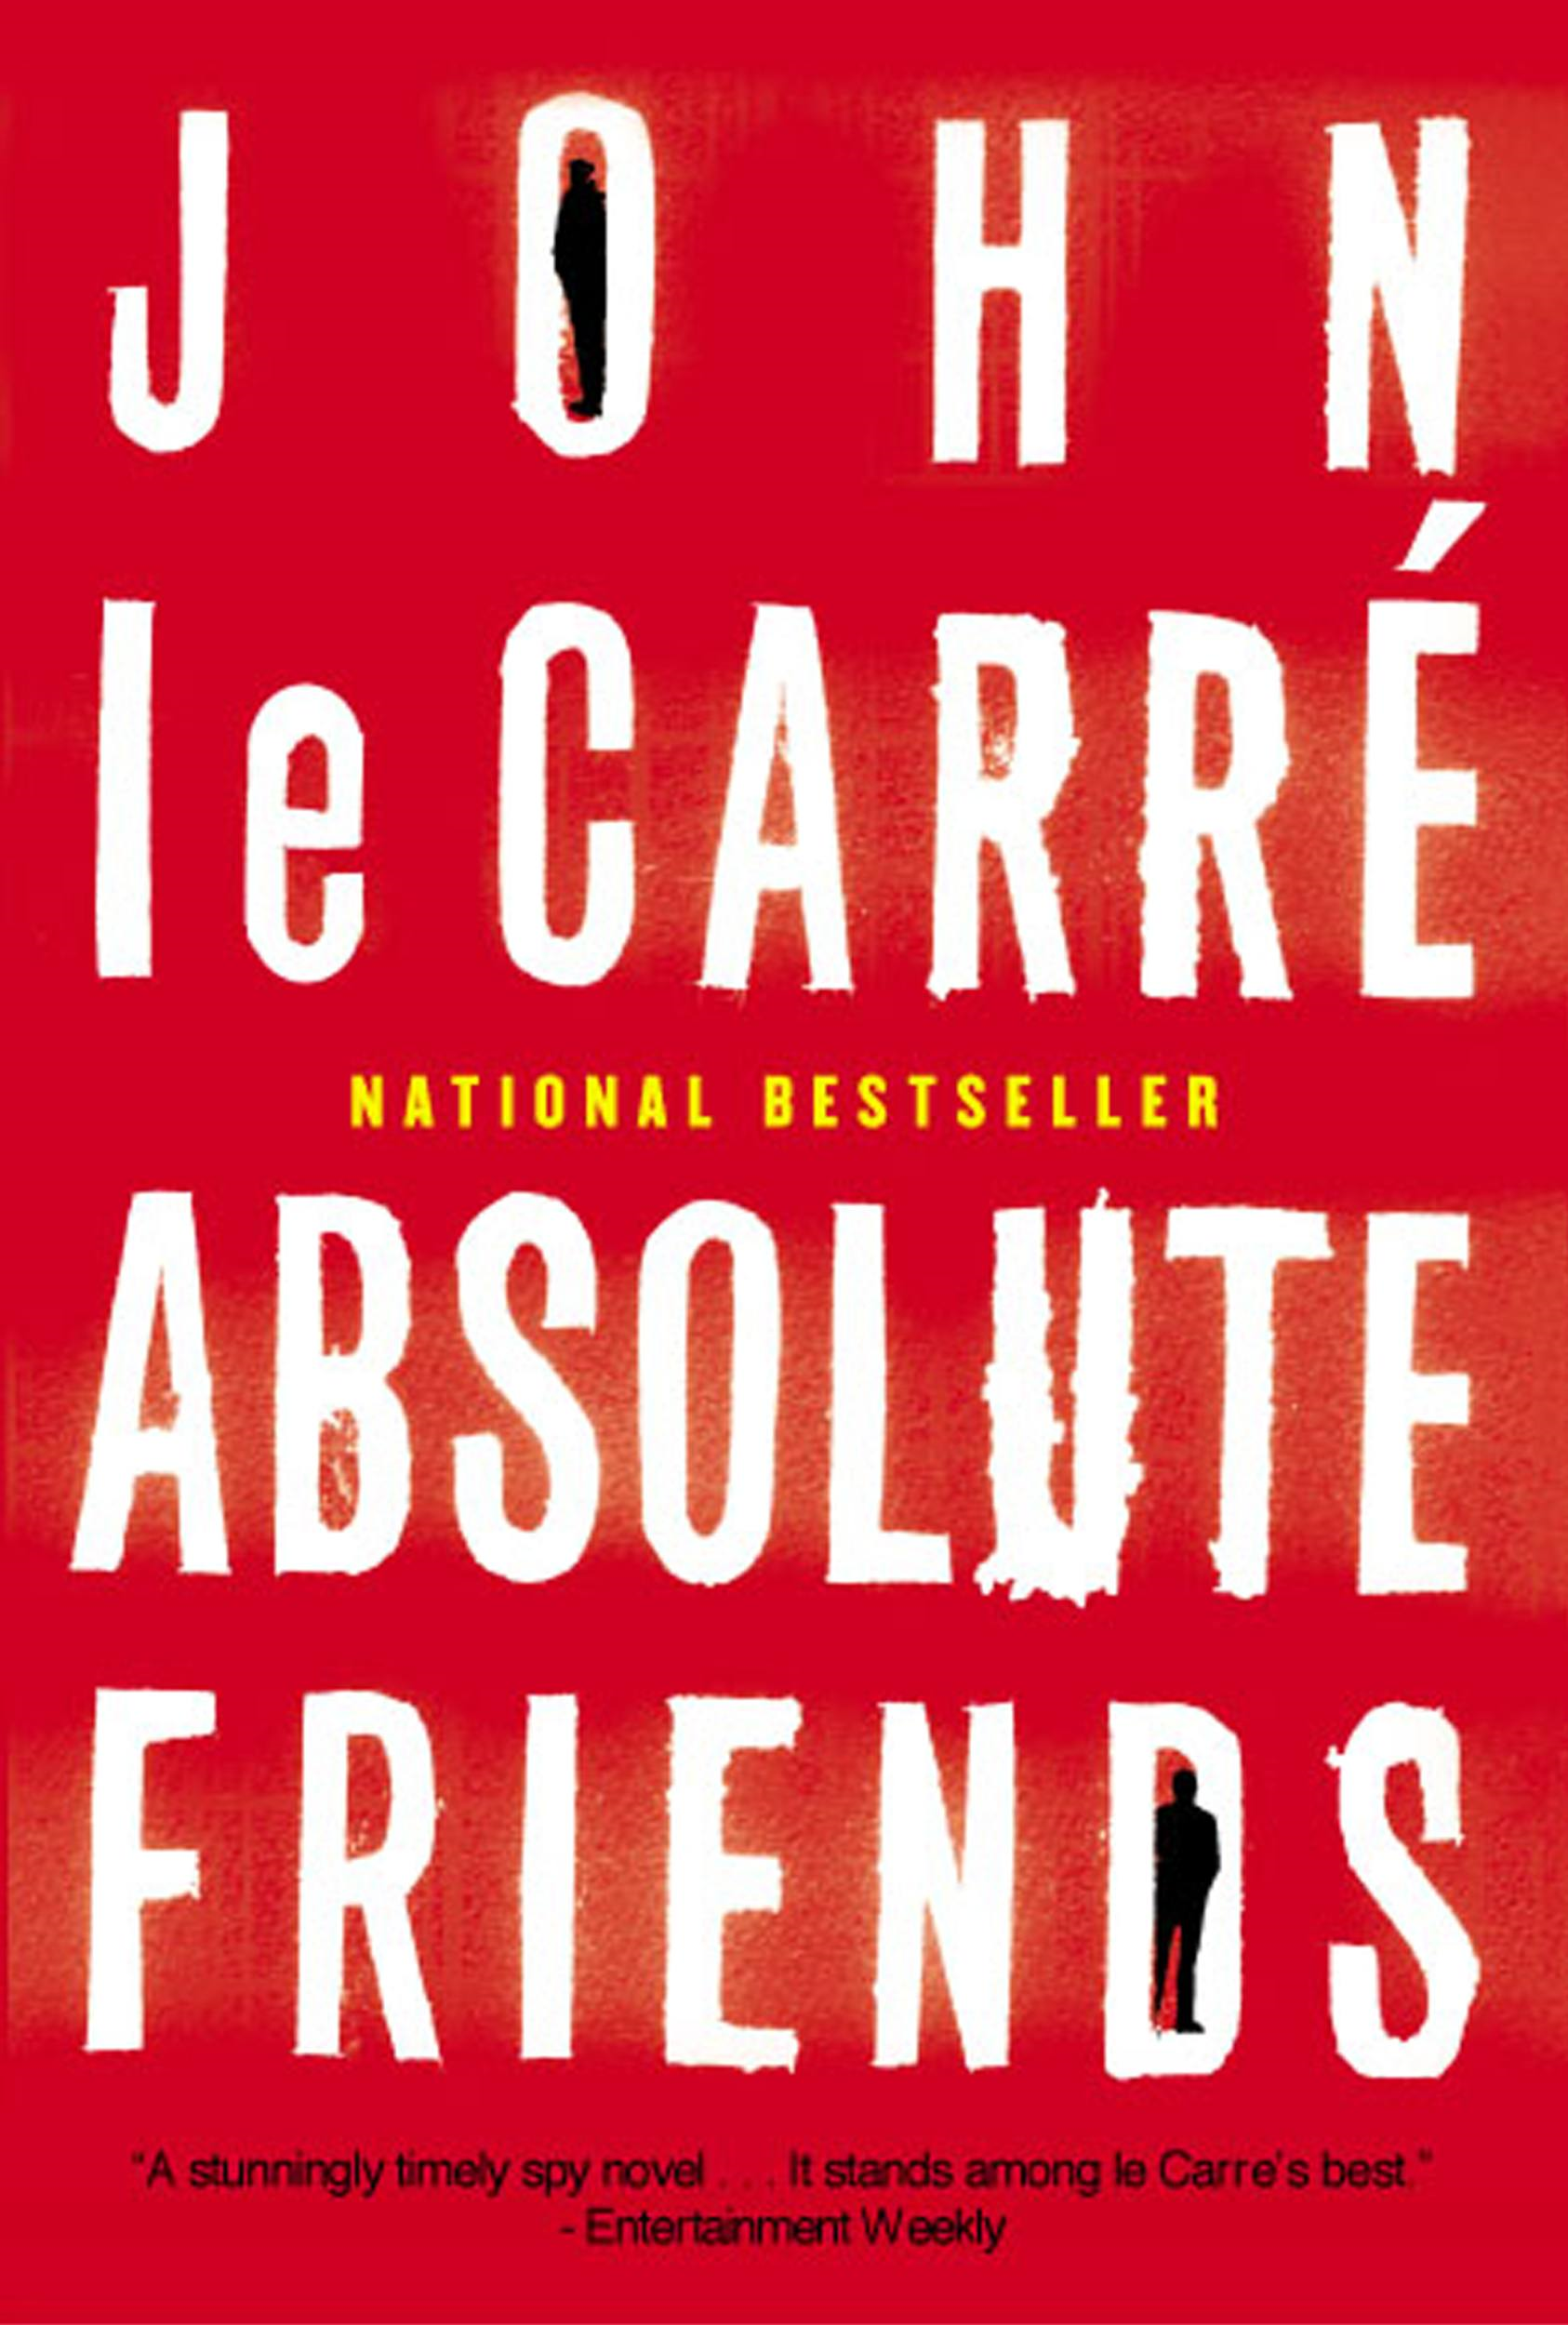 Absolute Friends By: John le Carre